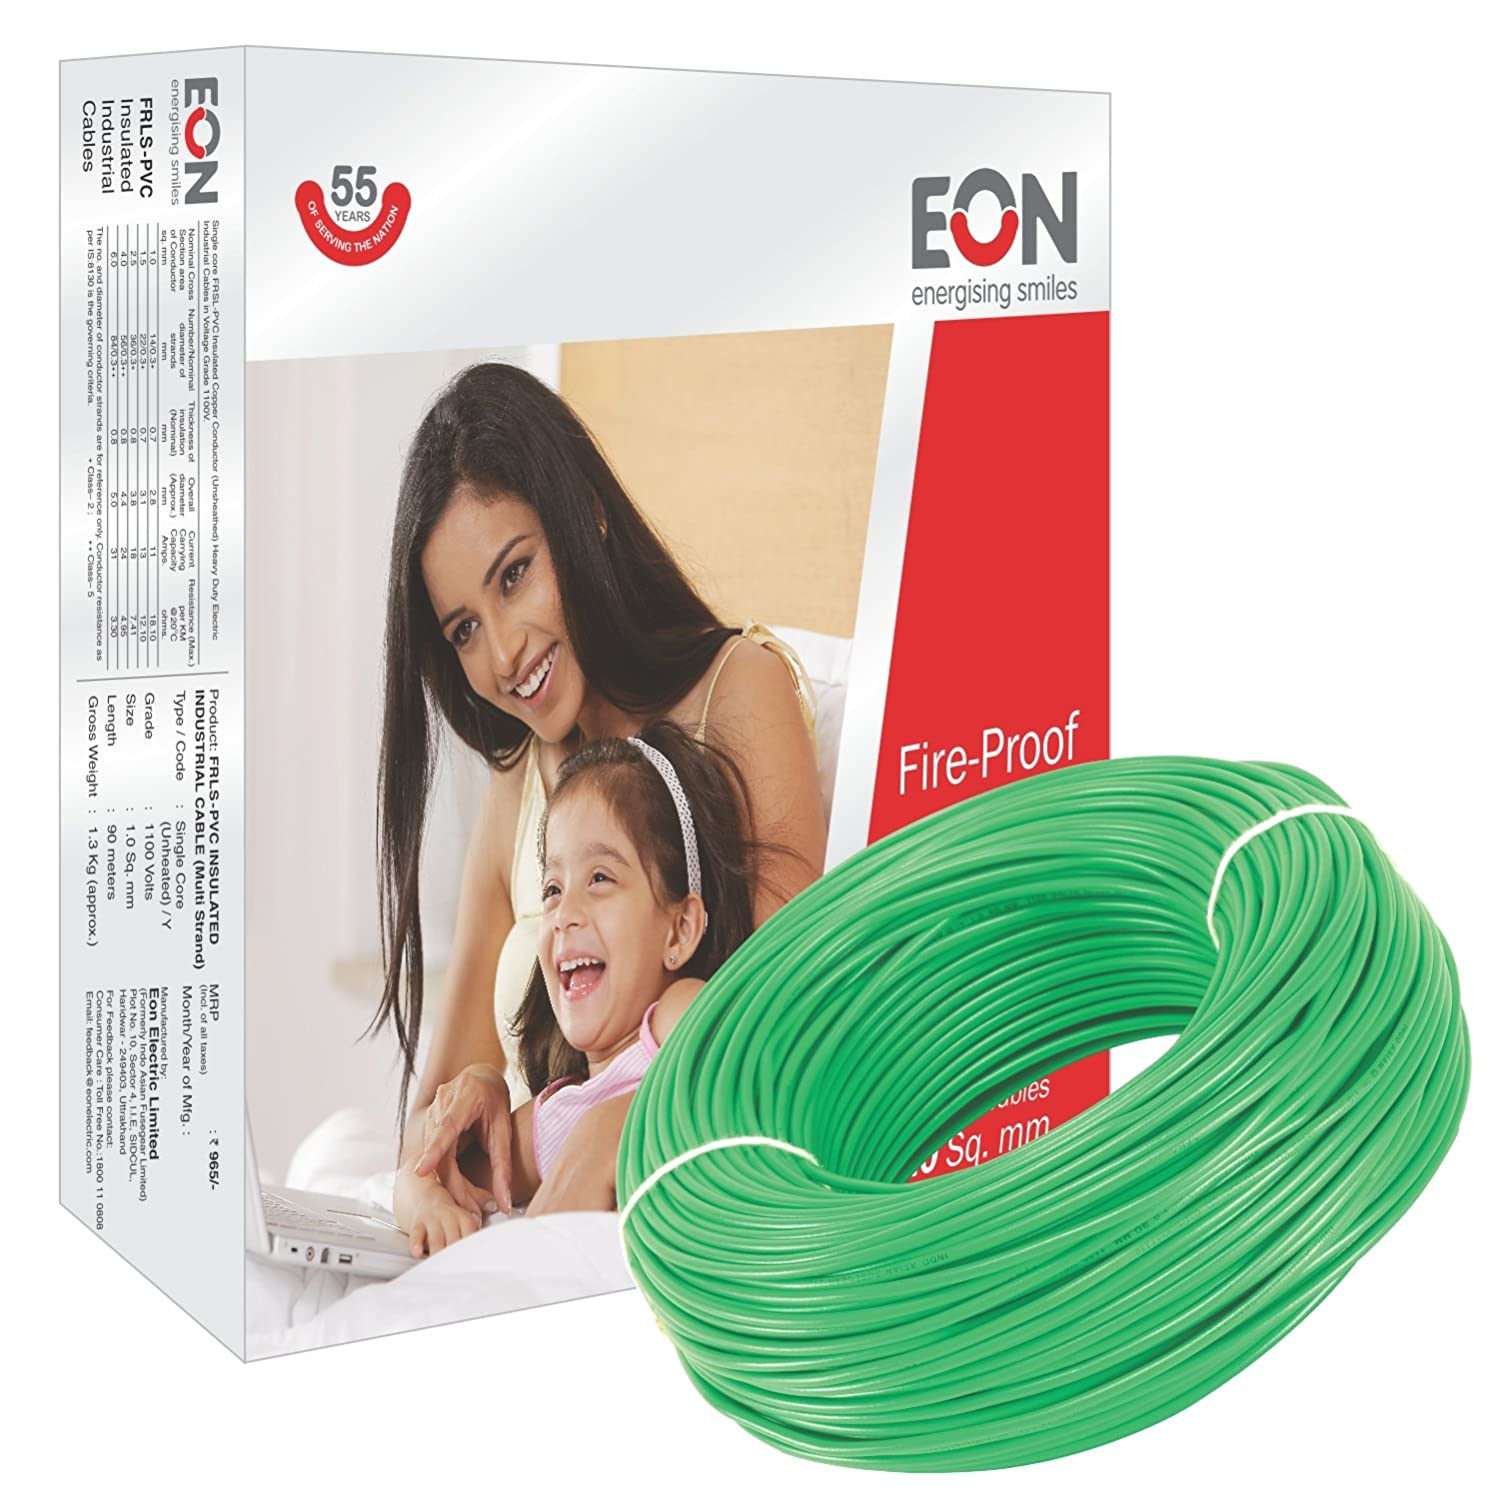 Eon Fire Proof Fr Pvc Insulated 90 Meter Electric Wire House Wiring Code Canada Electronics